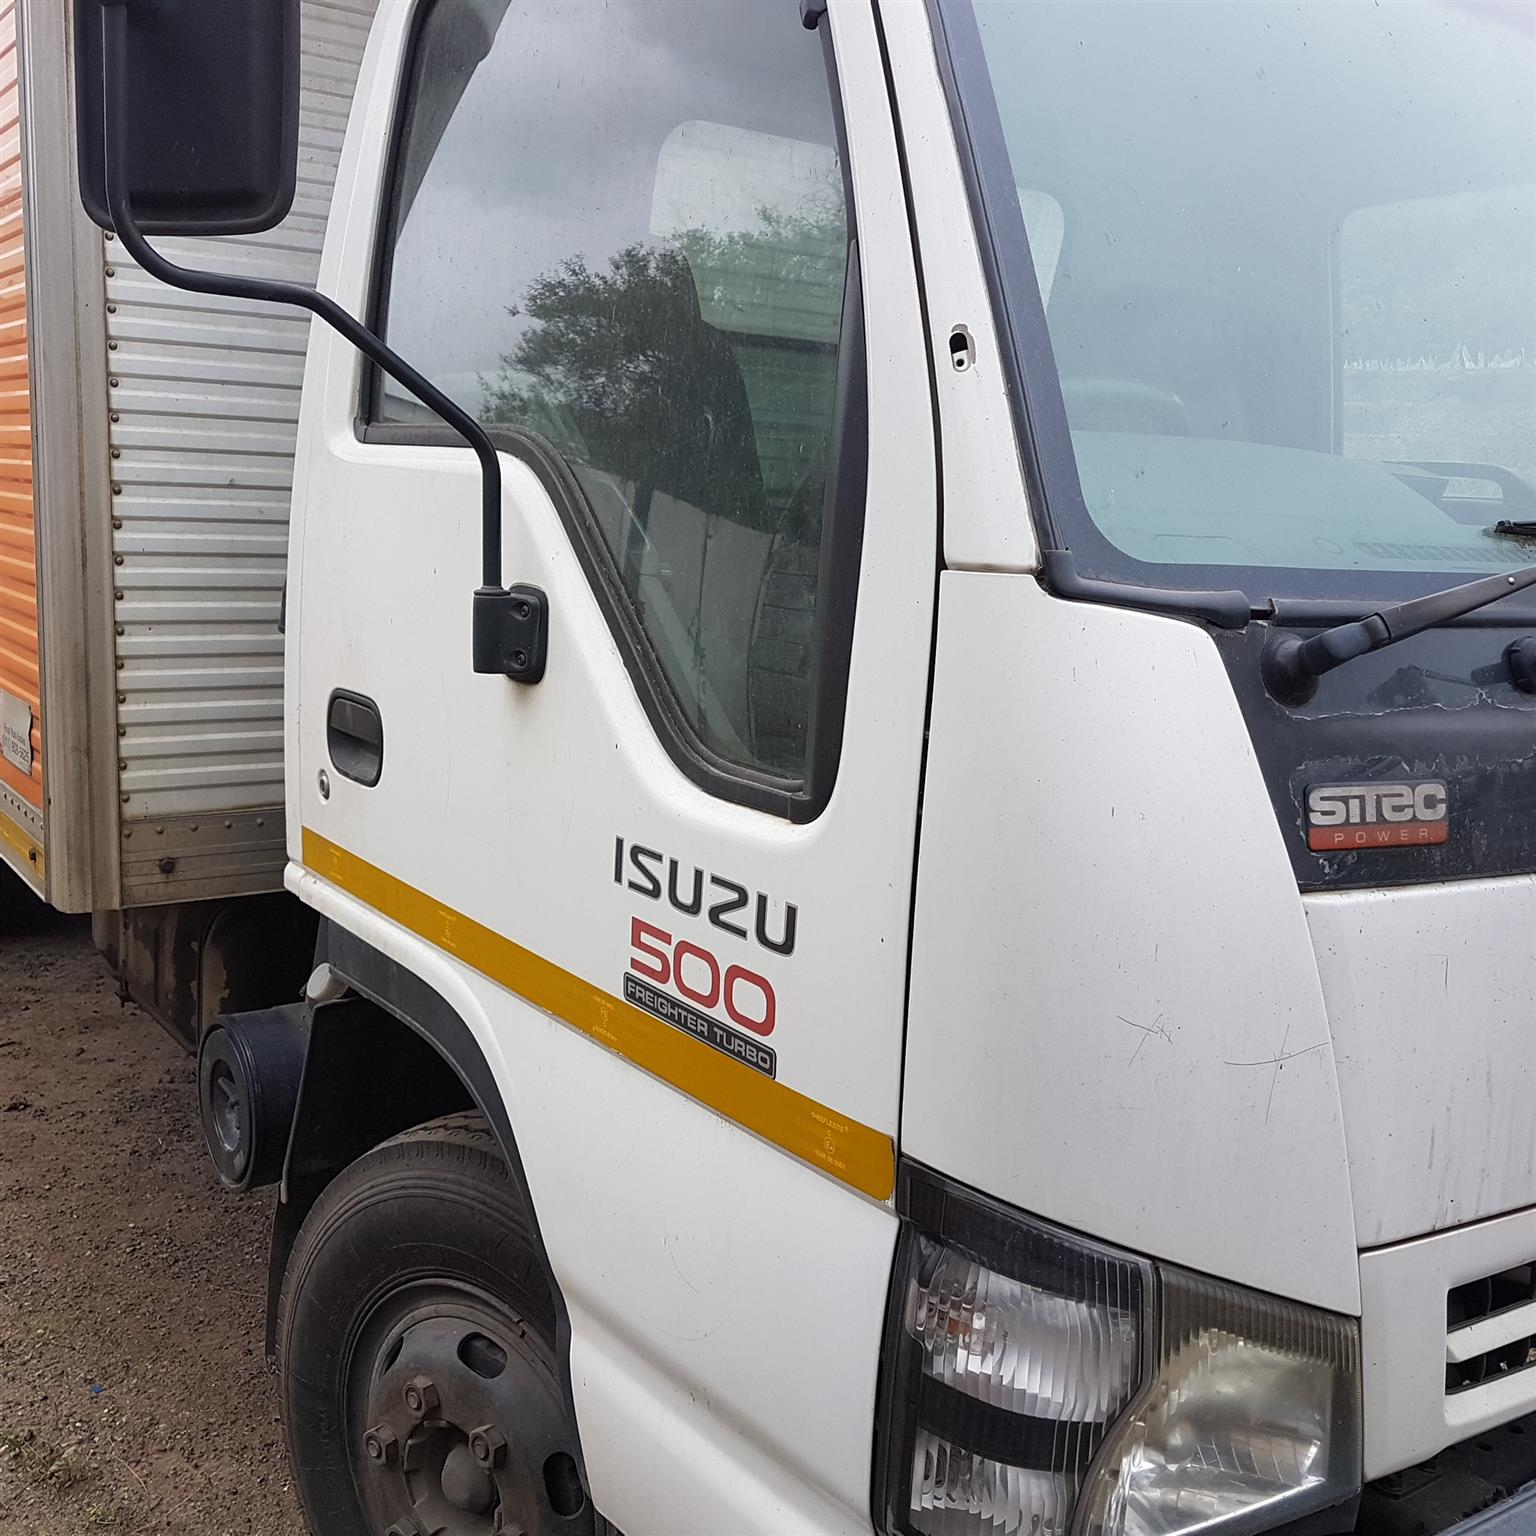 2007 ISUZU NQR 500 SITEC TRUCK - Stripping 4 spares only. 4HK1 Ti engine Parts . 6 Sp gearbox ,Closed body